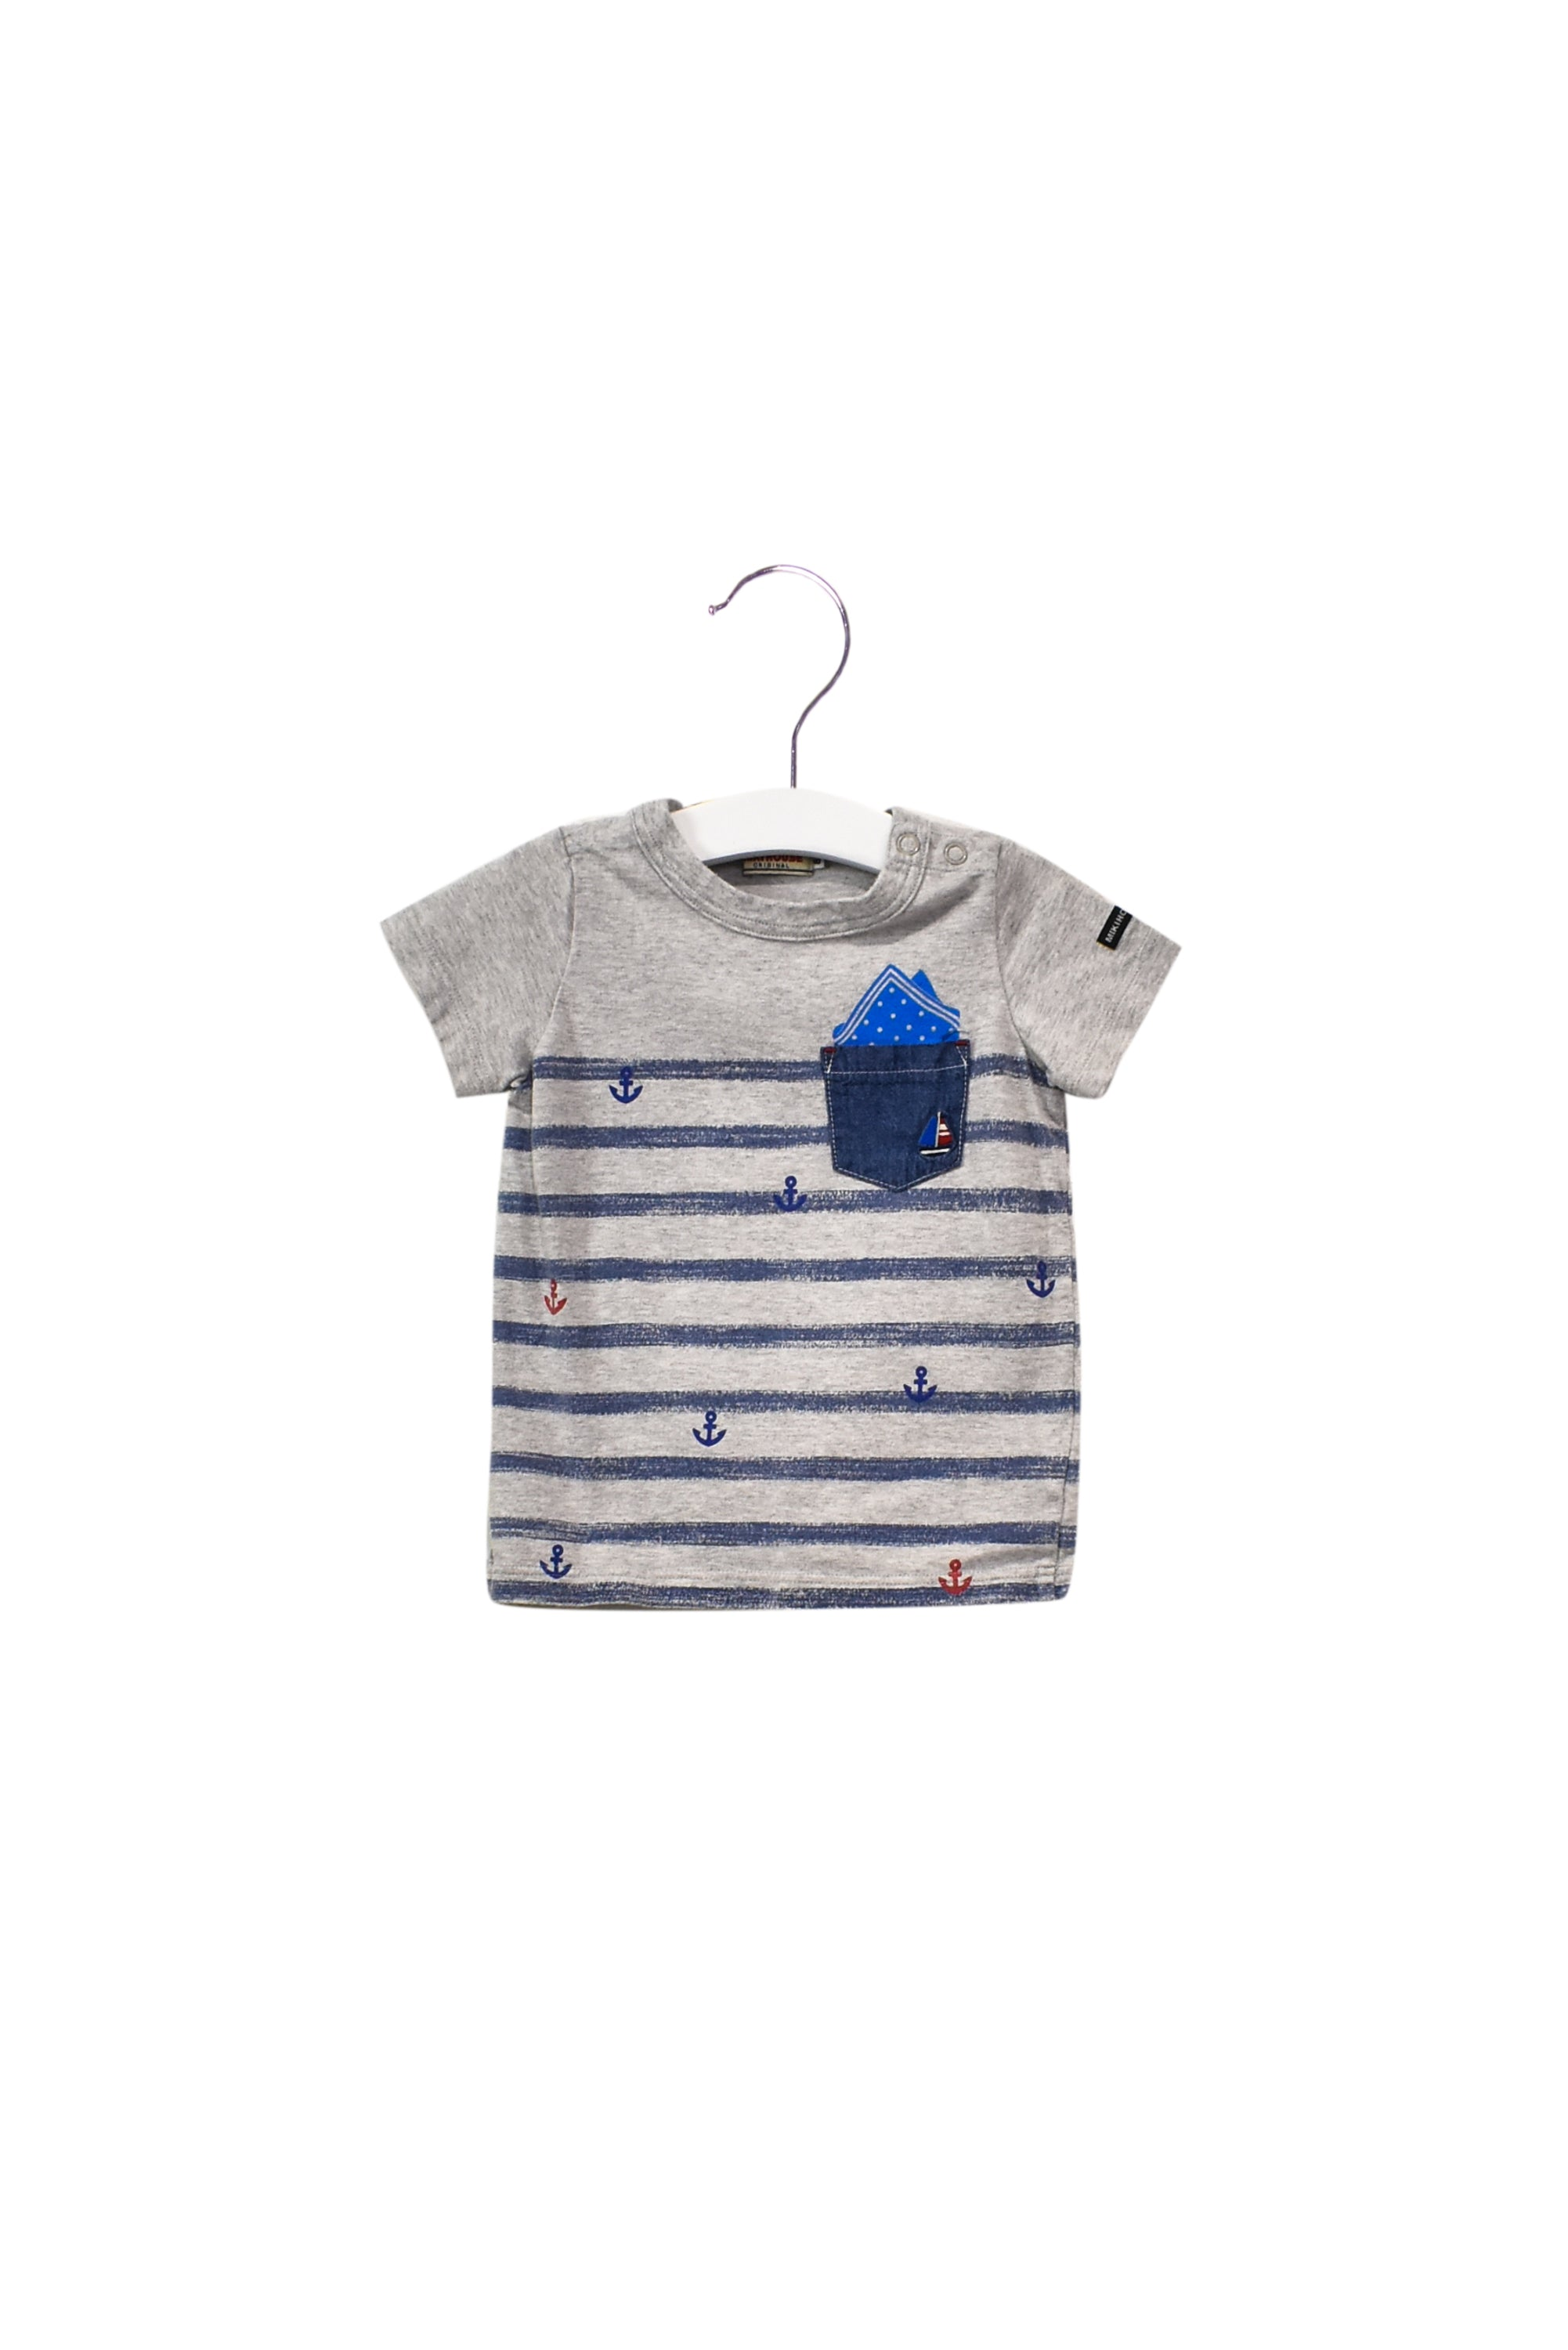 10025894 Miki House Baby~Shirt 12-18M (80cm) at Retykle